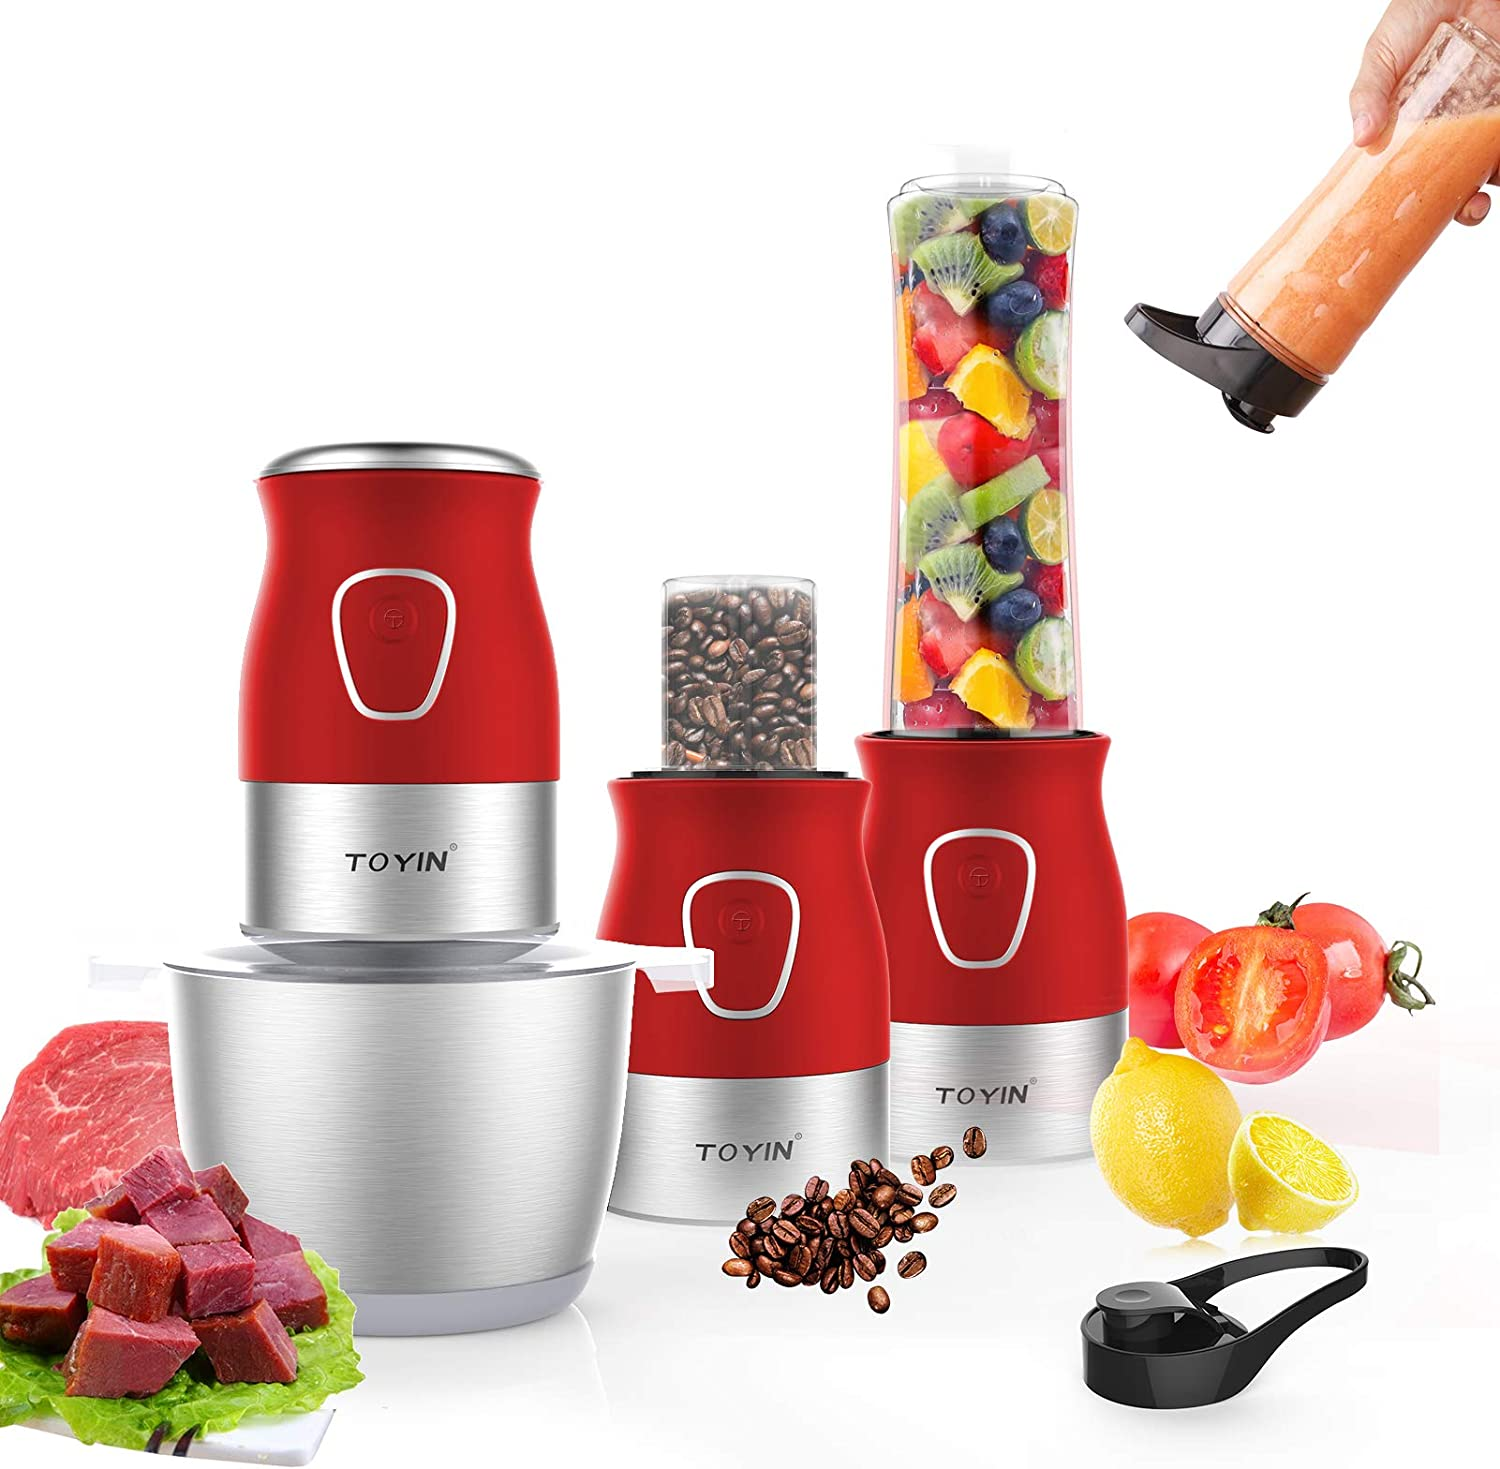 Electric Food Processor Chopper blender coffee Meat grinder 3 in 1 Set Mini 2L Stainless Steel Kitchen for Vegetables, Fruits and Spices, 4 Detachable Dual Layer Blades (Wine Red)